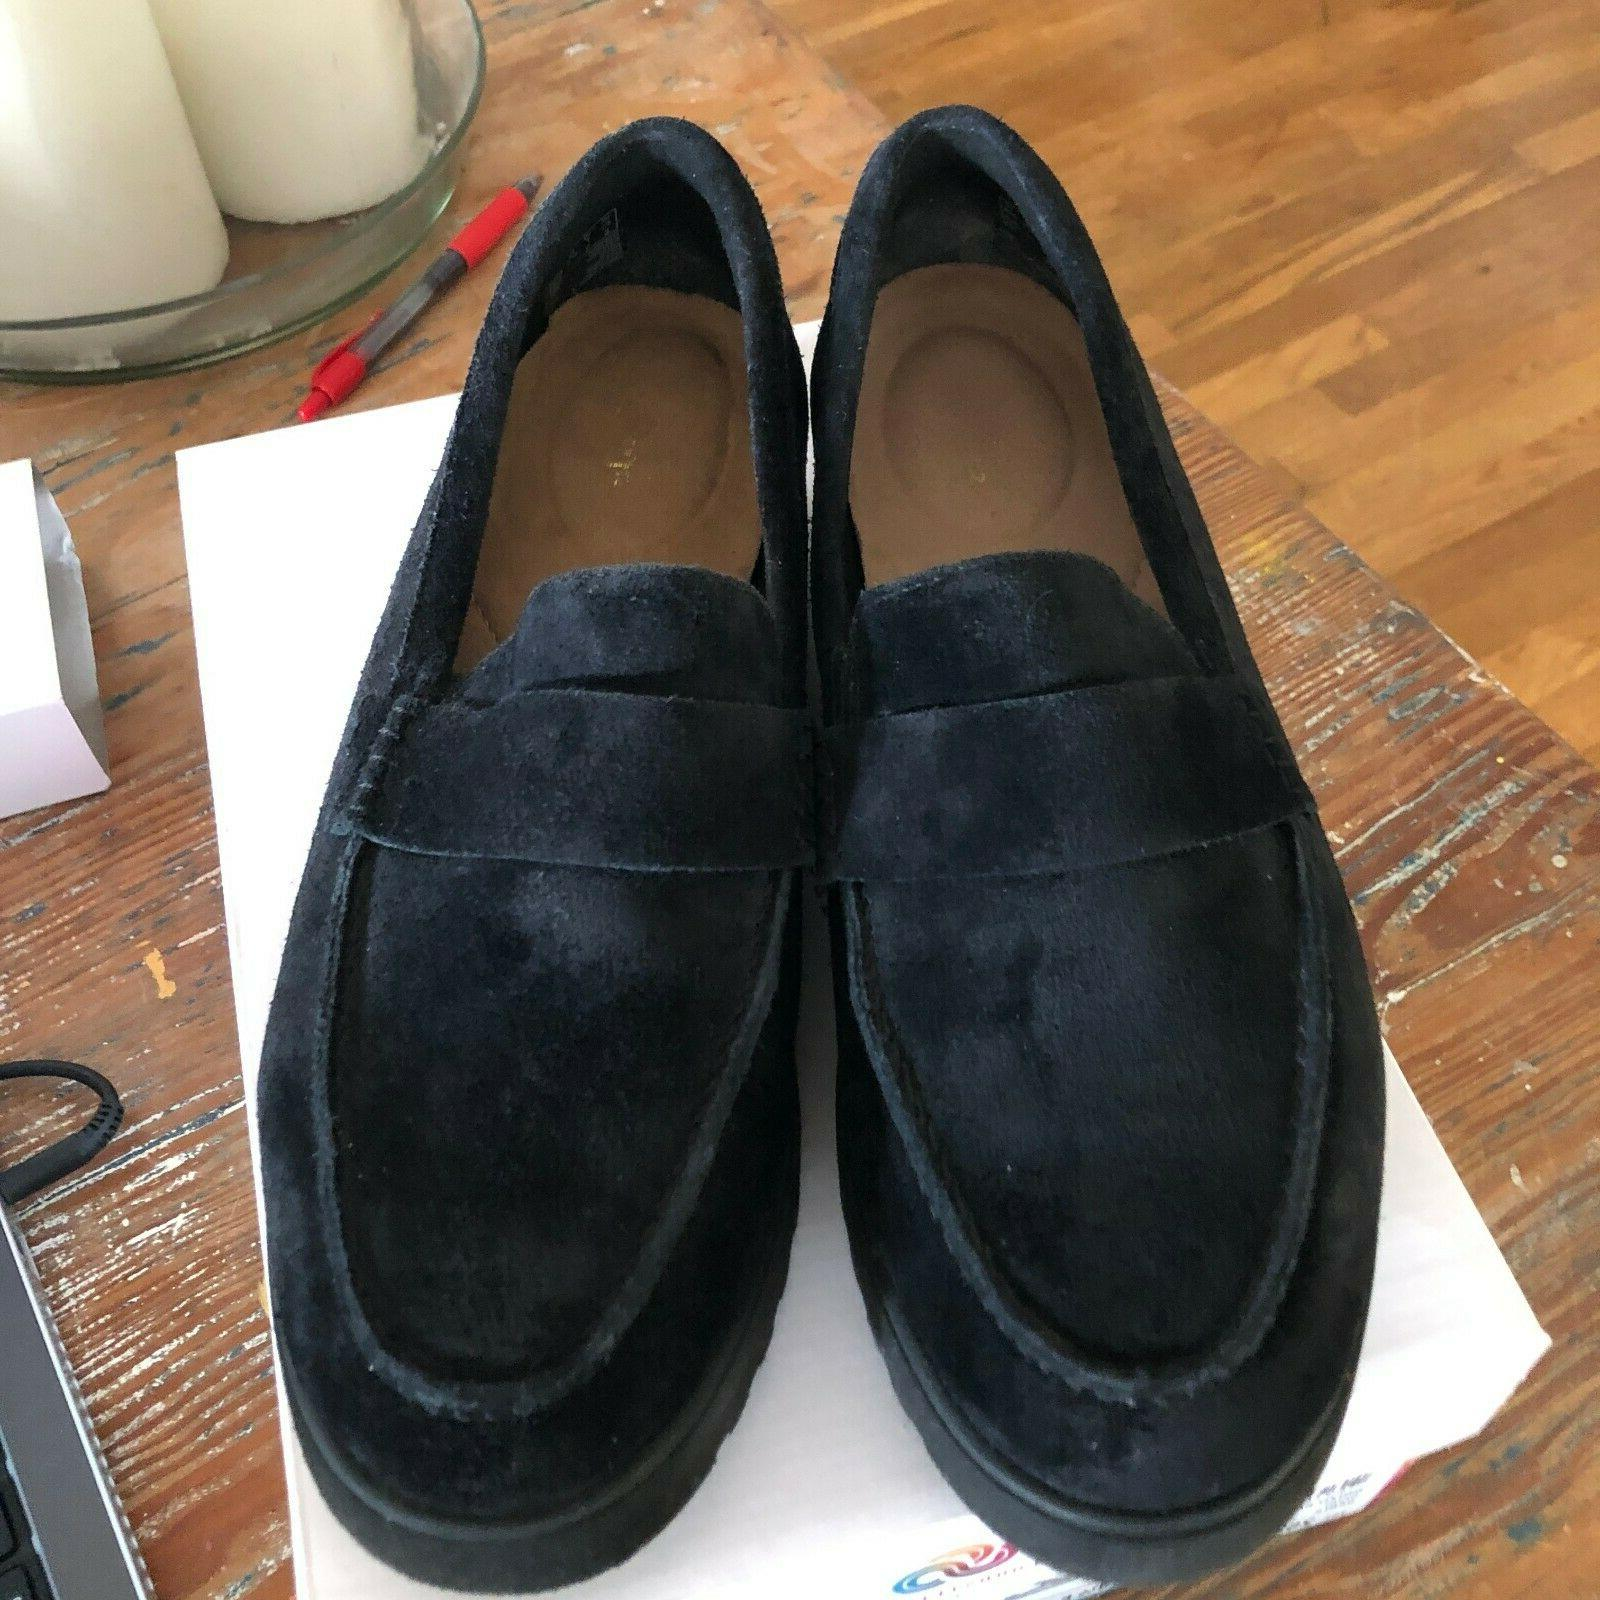 Clarks BLACK Cleated Loafers Bellevue 7W